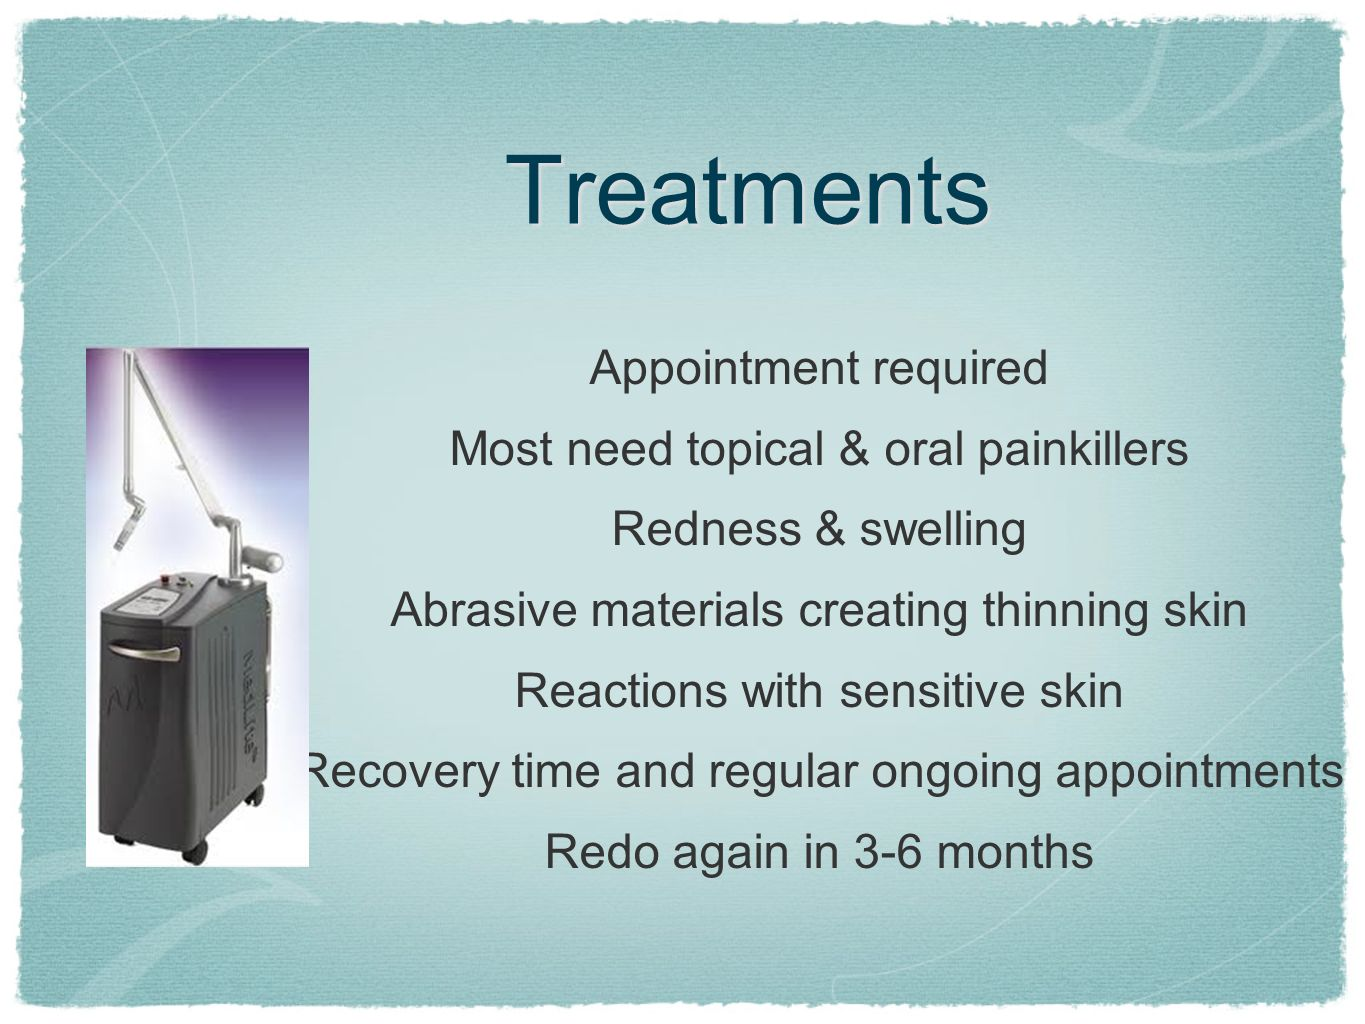 Treatments Appointment required Most need topical & oral painkillers Redness & swelling Abrasive materials creating thinning skin Reactions with sensi